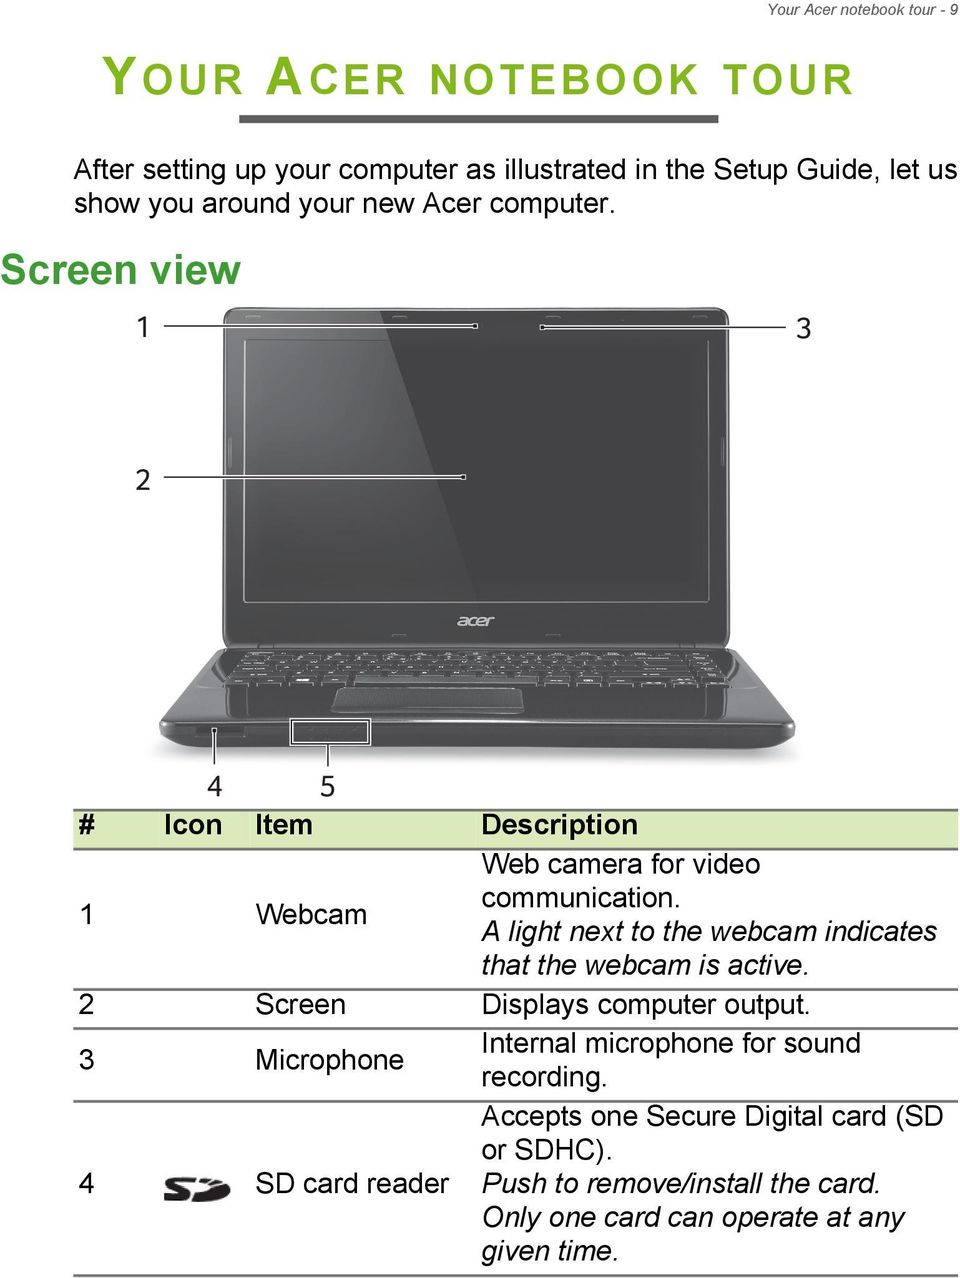 A light next to the webcam indicates that the webcam is active. 2 Screen Displays computer output.